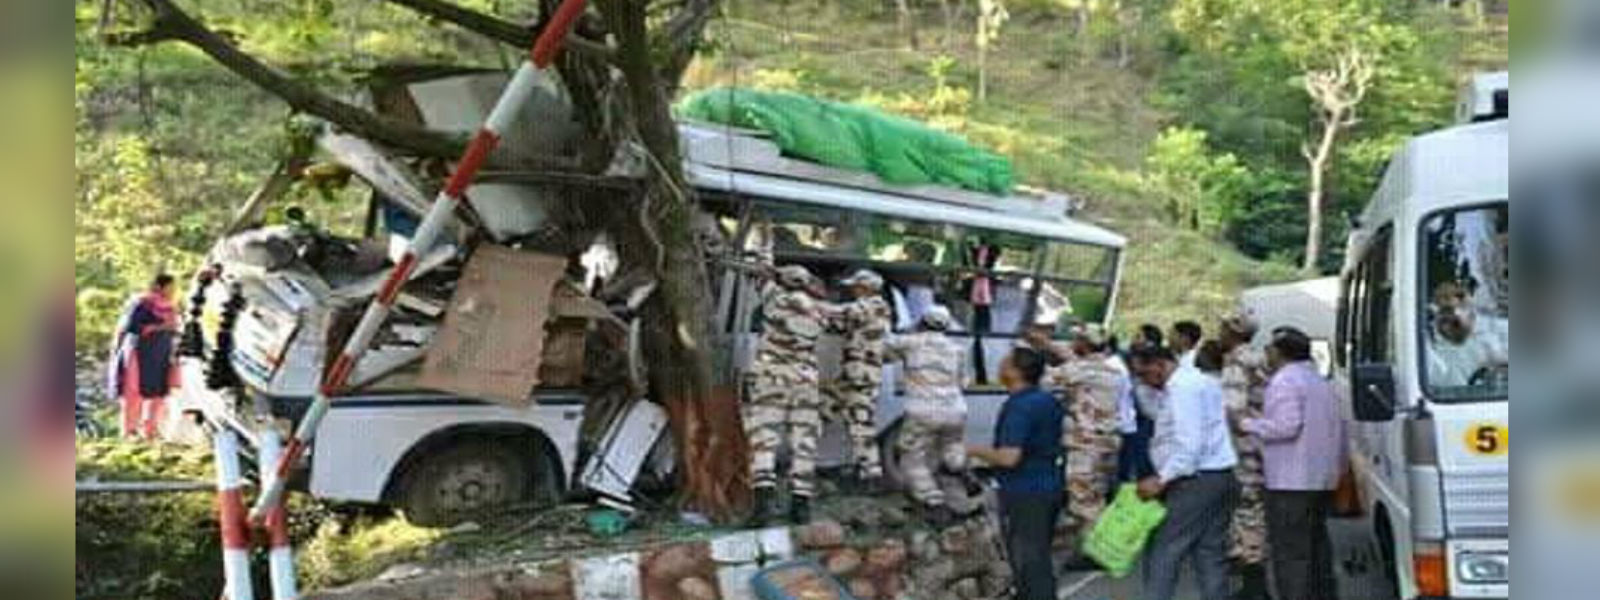 48 people killed when bus skidded in Uttarakhand